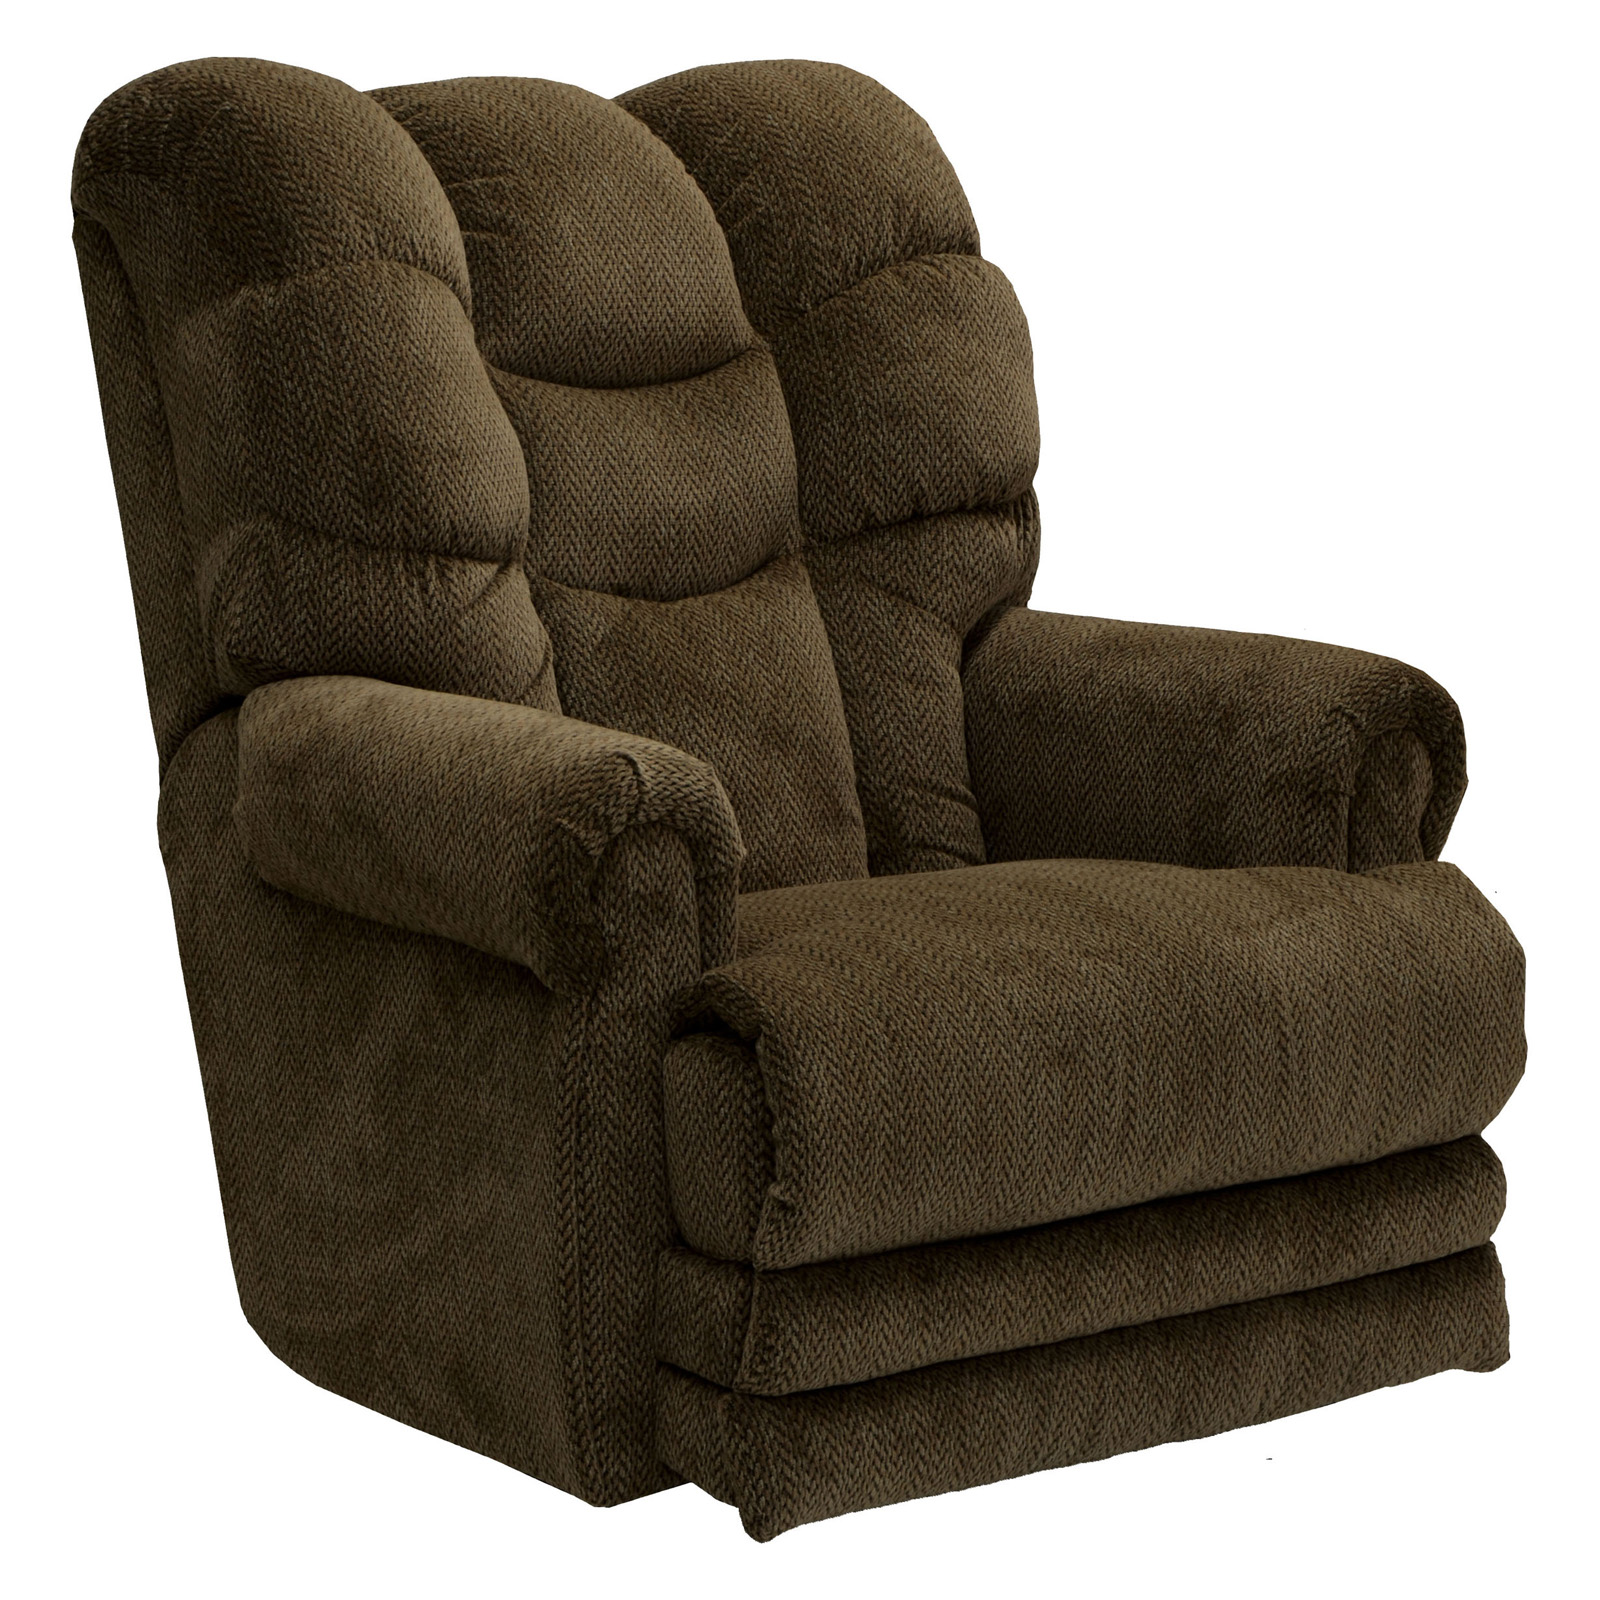 Catnapper Malone Fabric Oversized Power Lay Flat Recliner